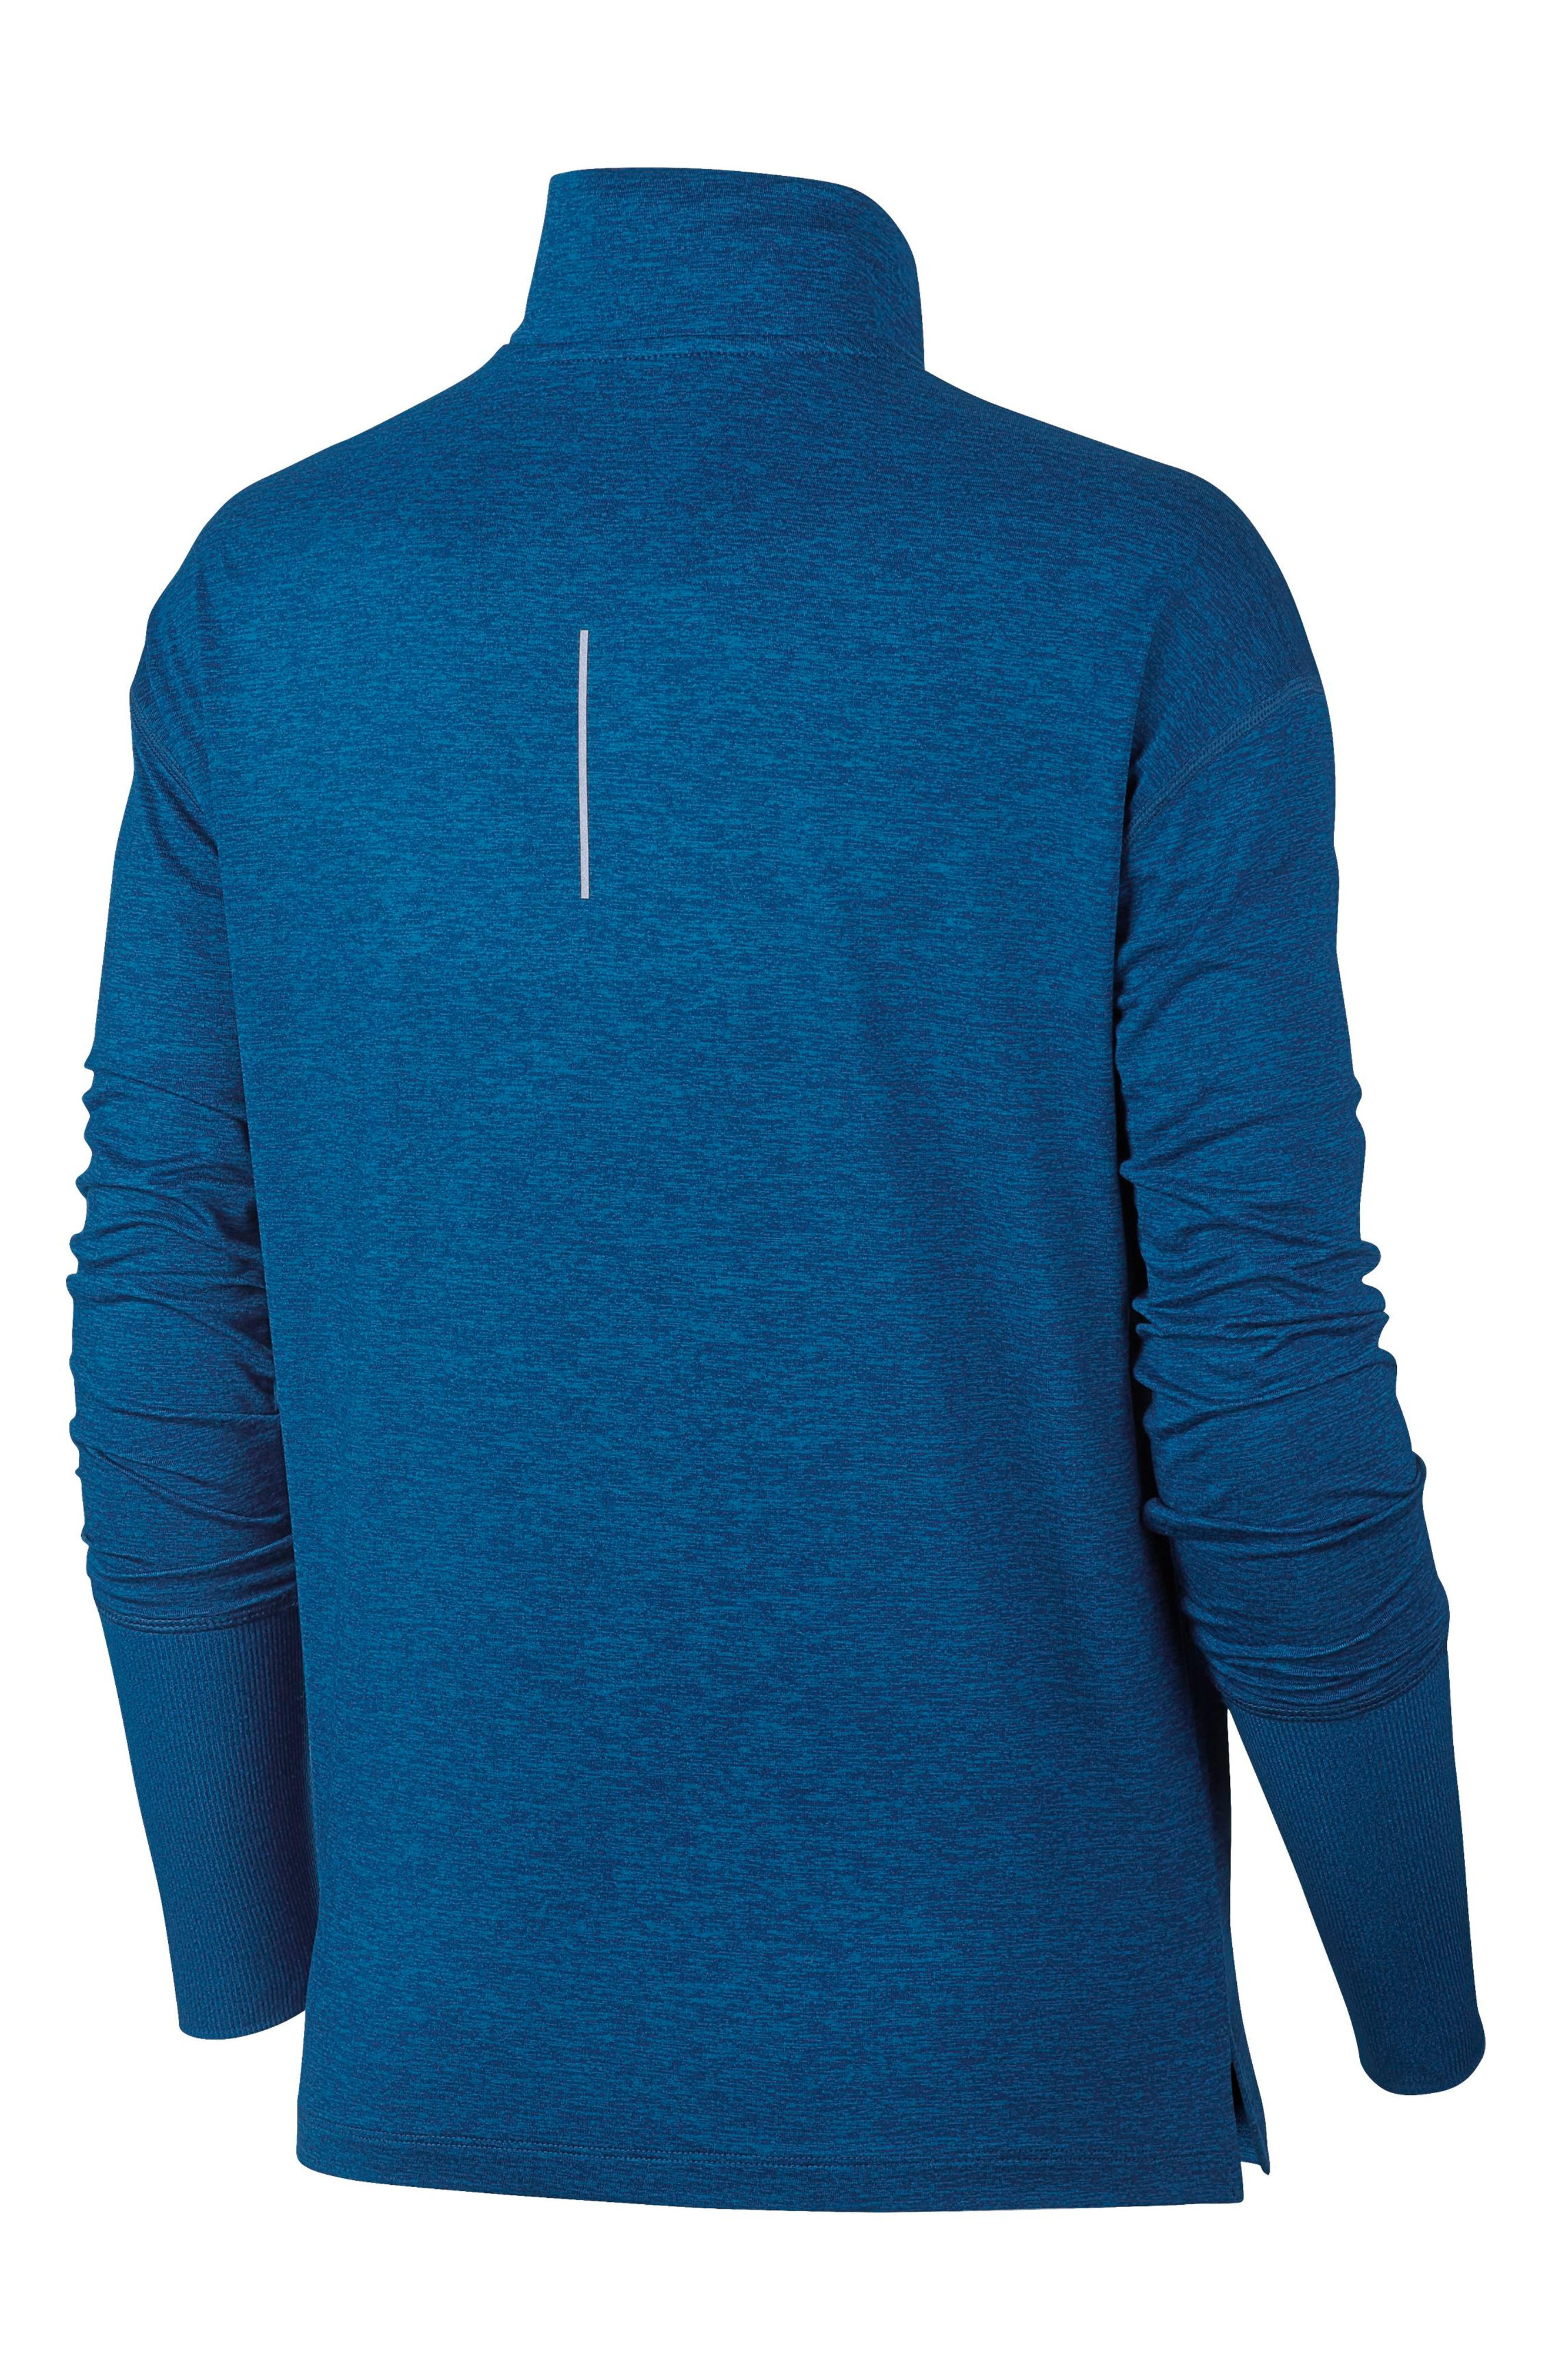 Element Long-Sleeve Running Top,                             Alternate thumbnail 2, color,                             BLUE FORCE/ GREEN ABYSS